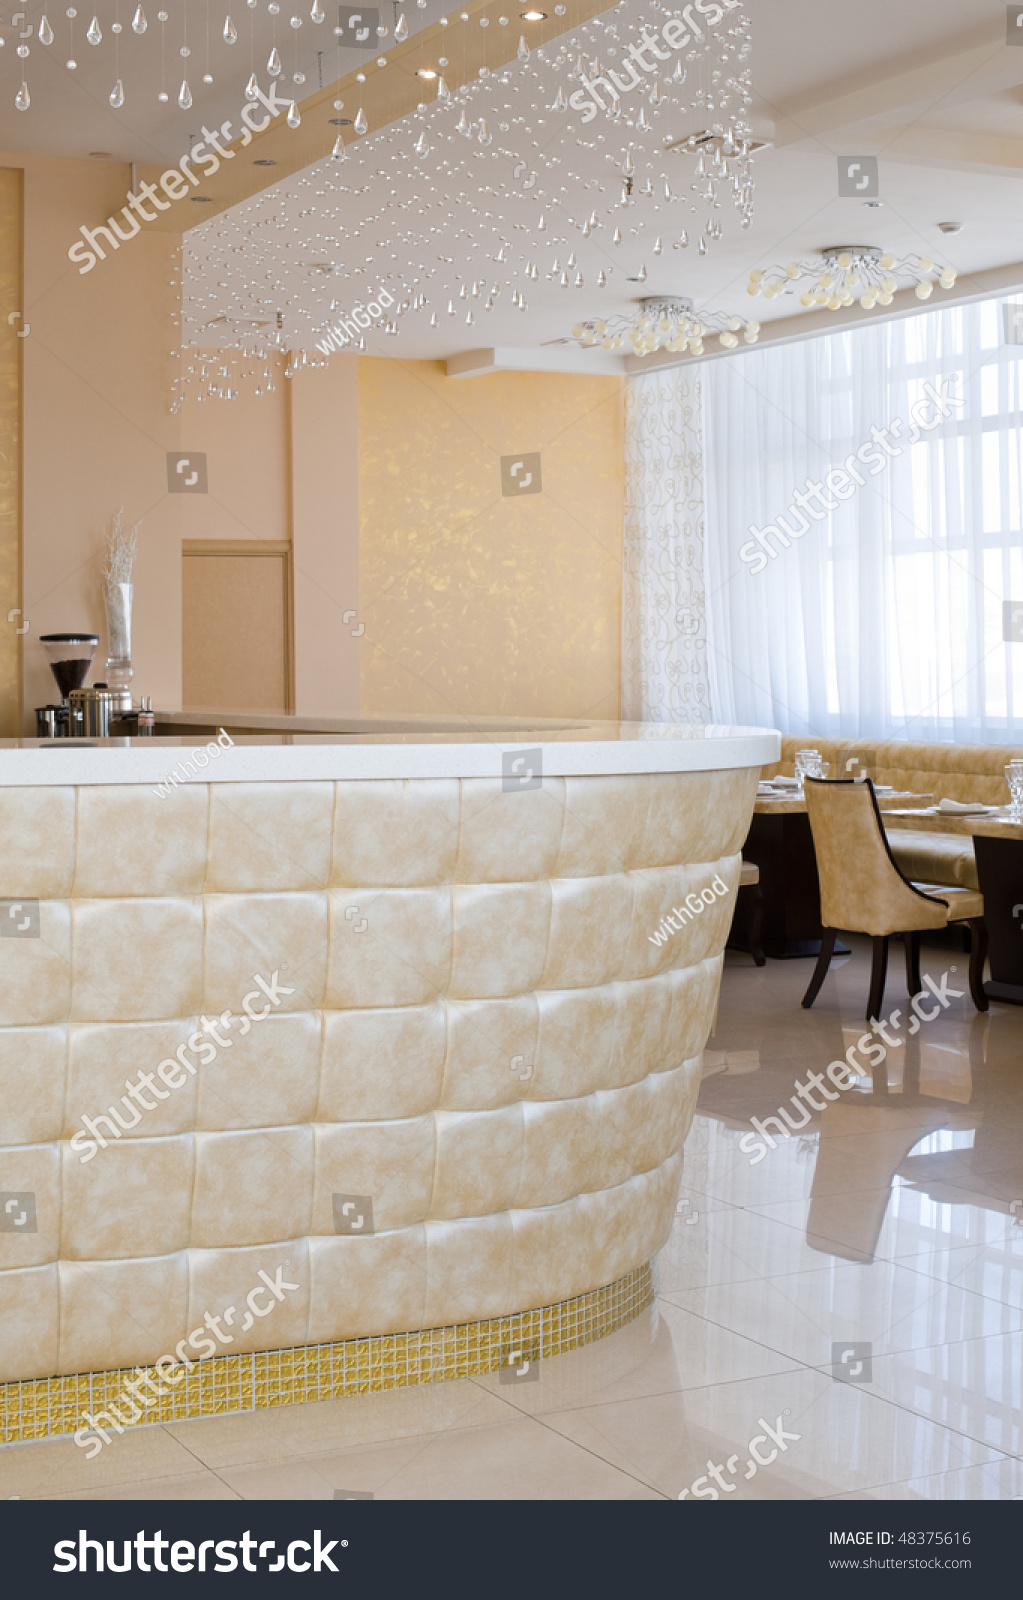 upholstered bar with crystal curtain in restaurant interior of